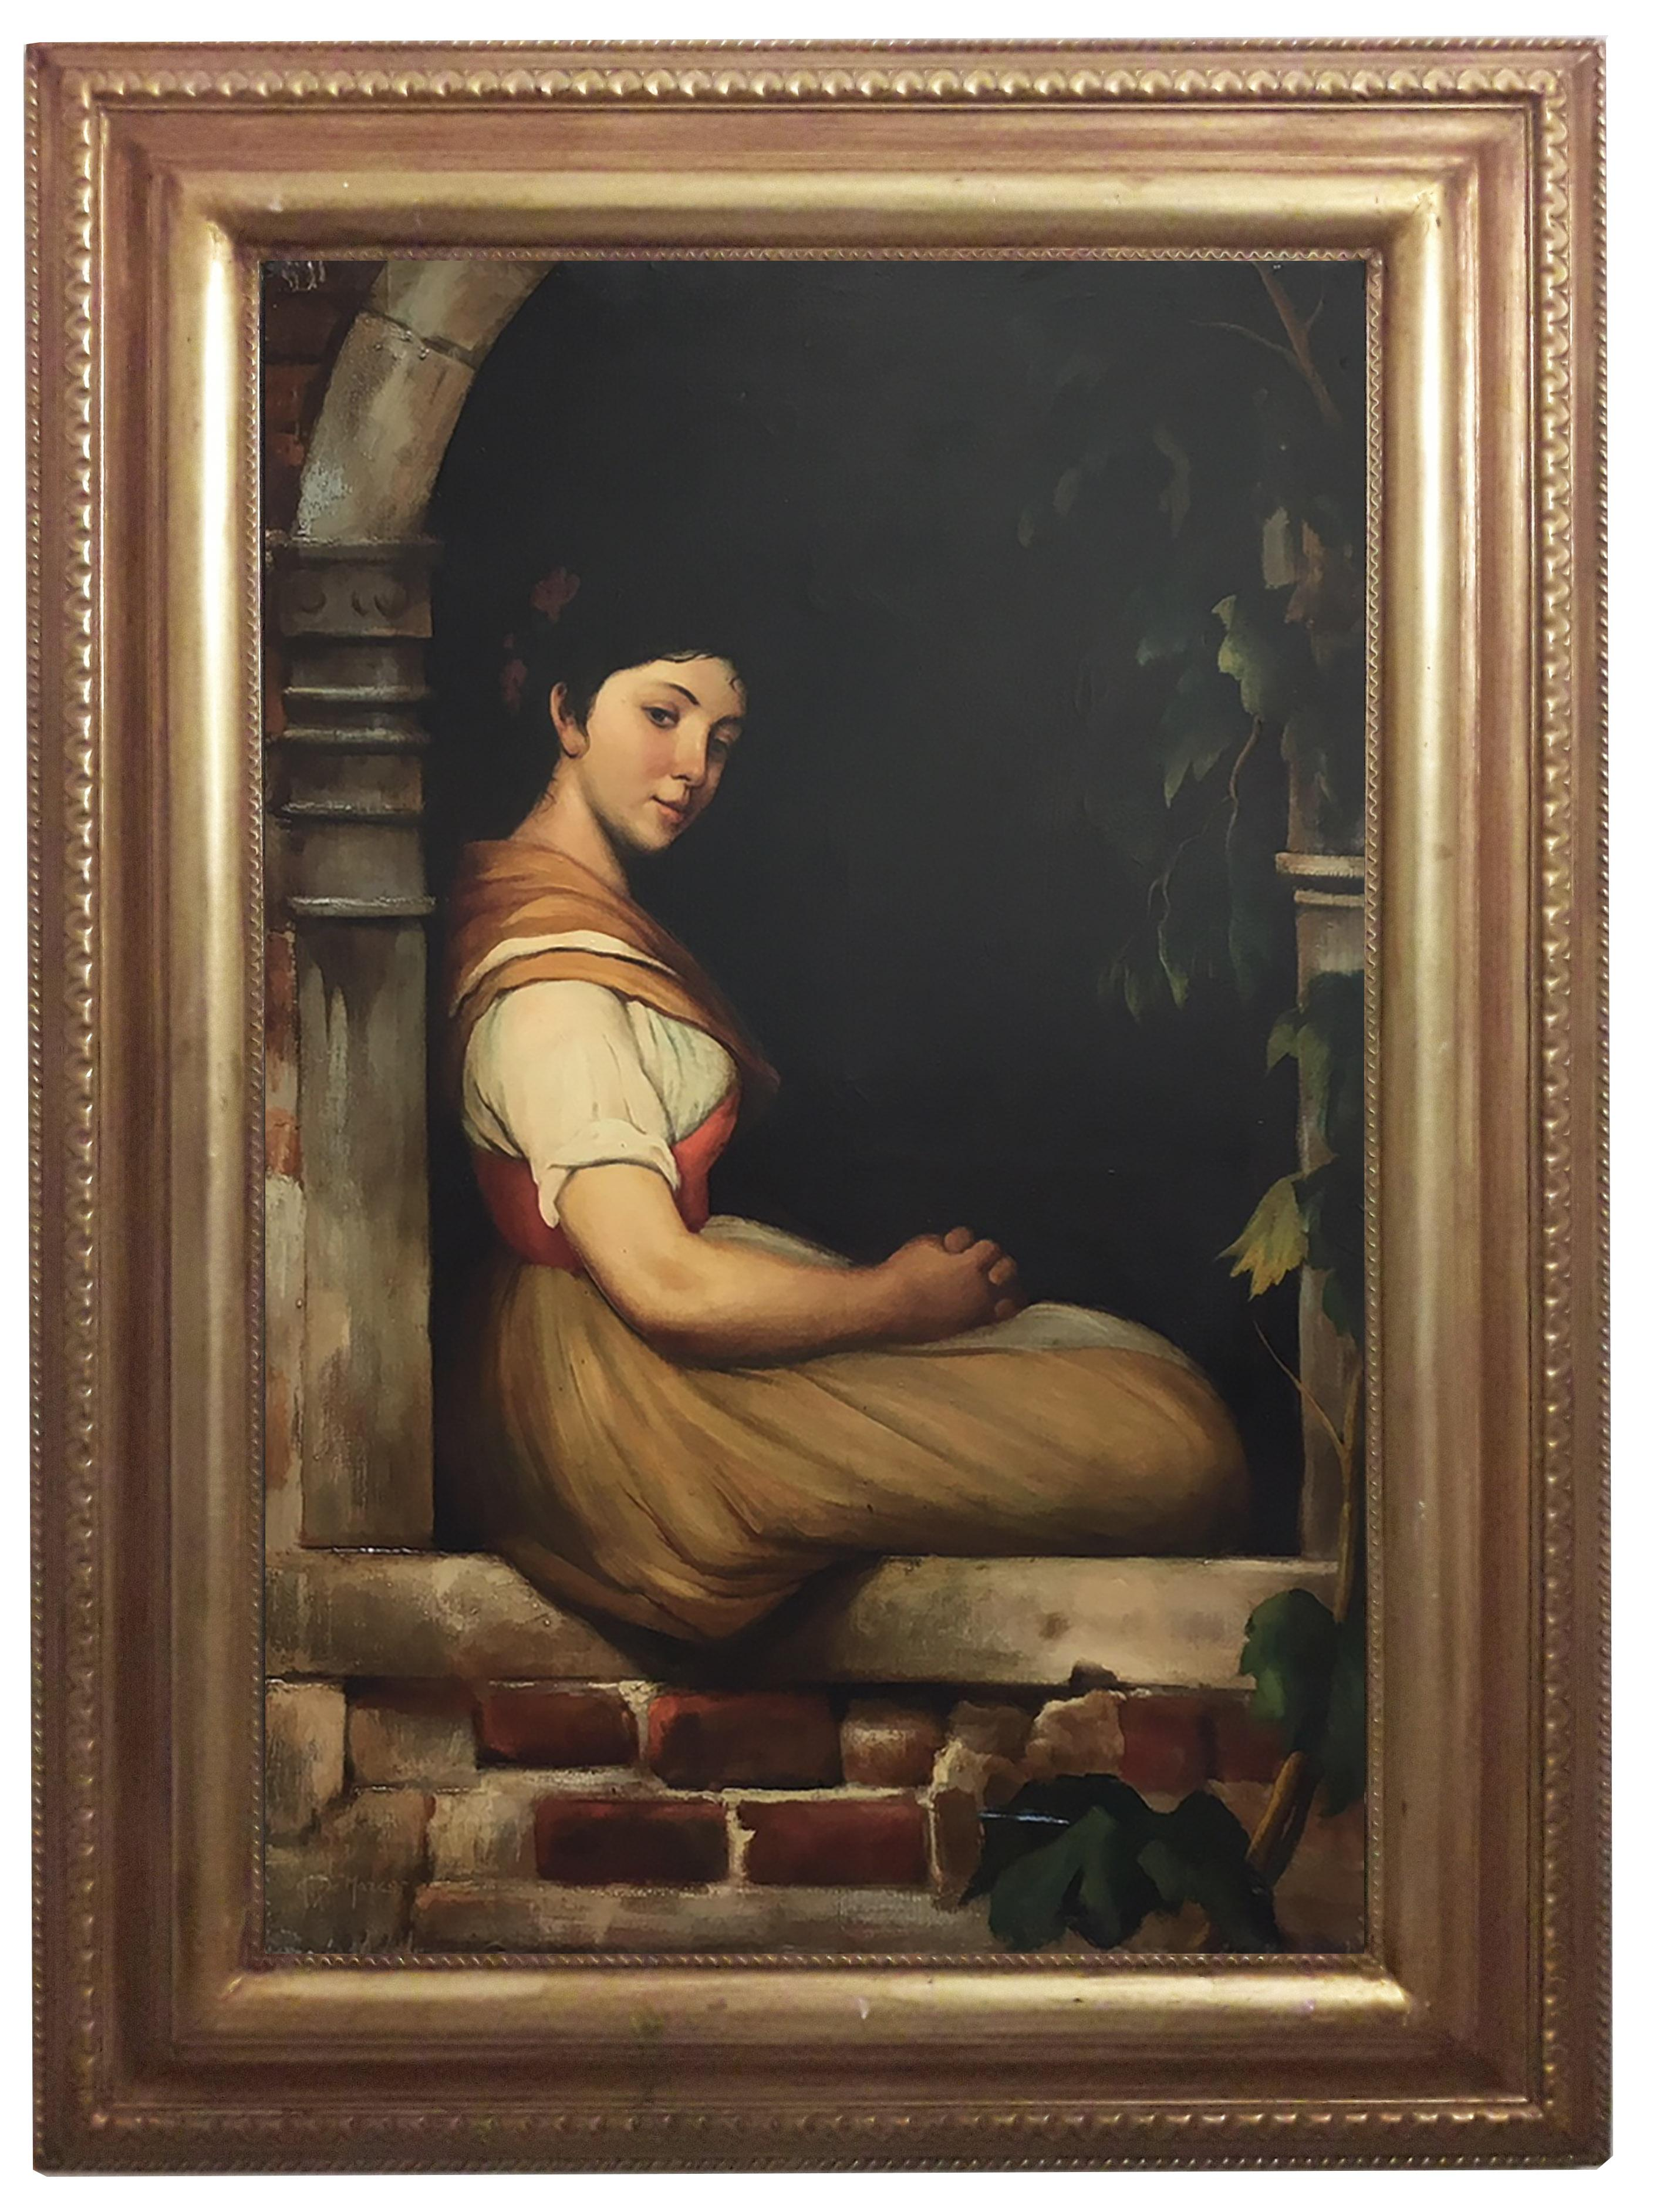 CHILD- In the Manner of  W.A. Bouguereau Figurative Italian Oil on Canvas  Paint